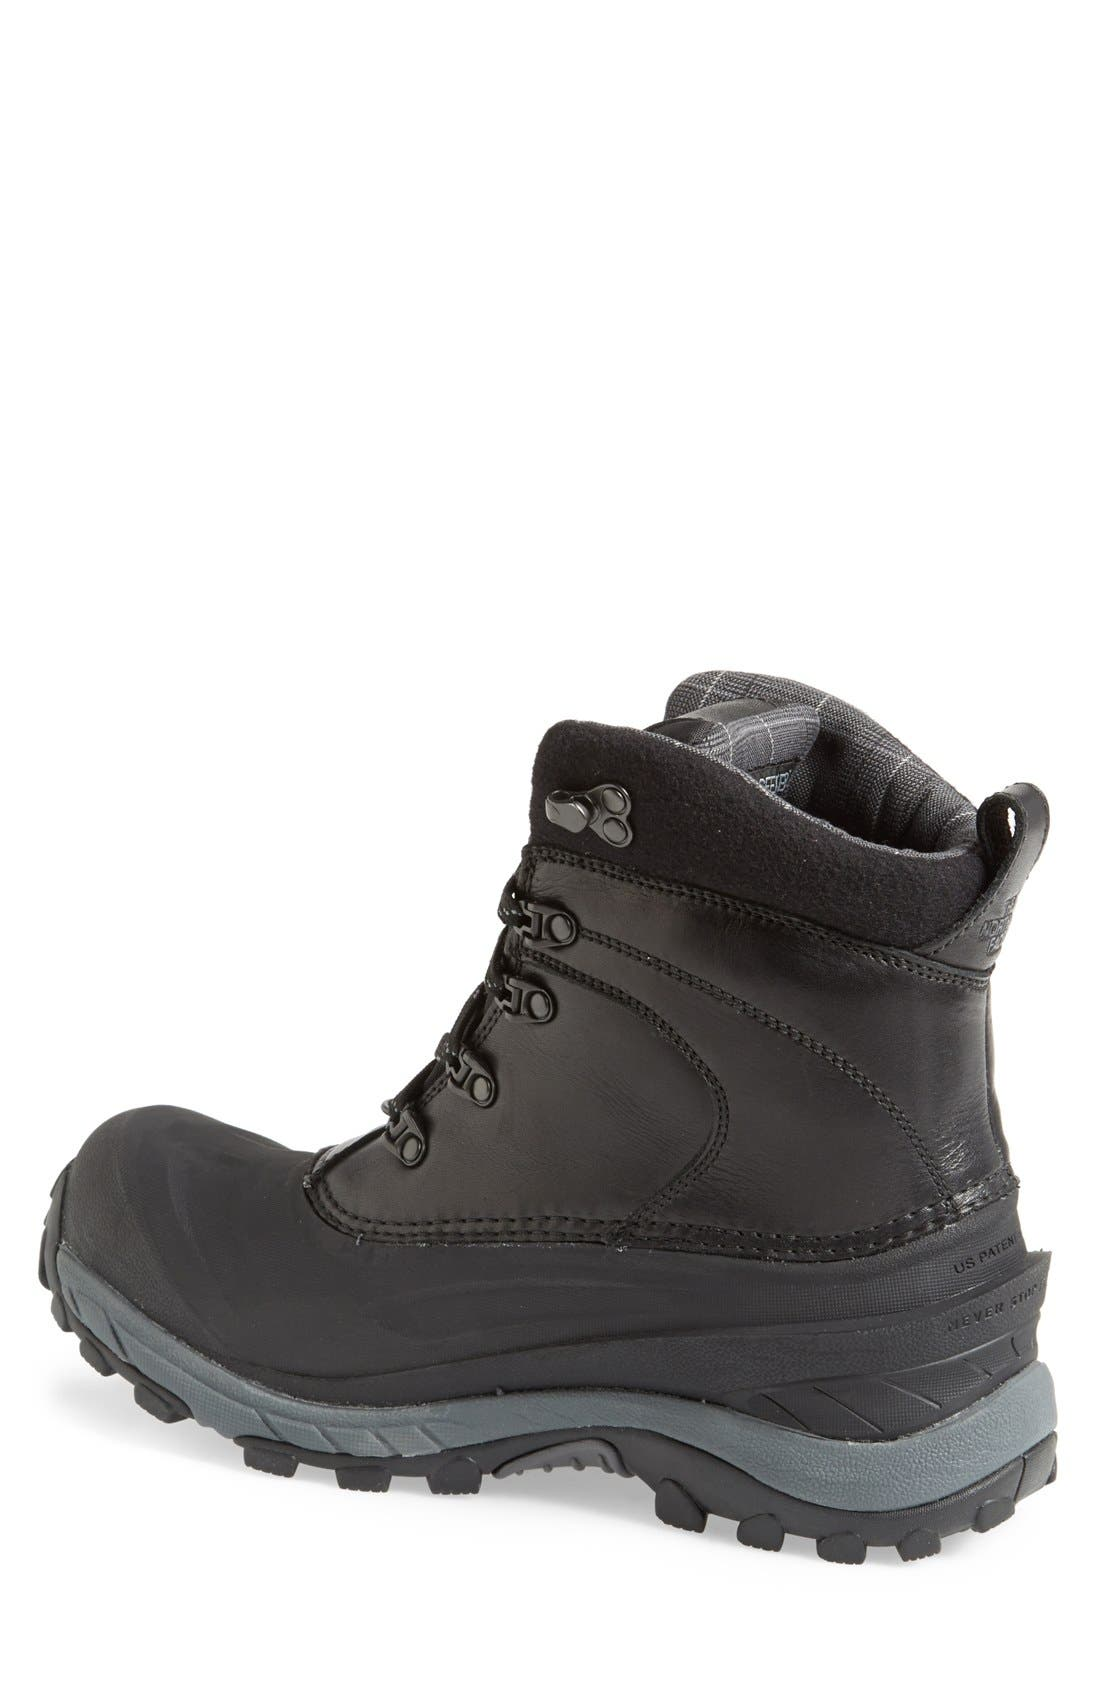 'Chilkat II Luxe' Snow Boot,                             Alternate thumbnail 3, color,                             001